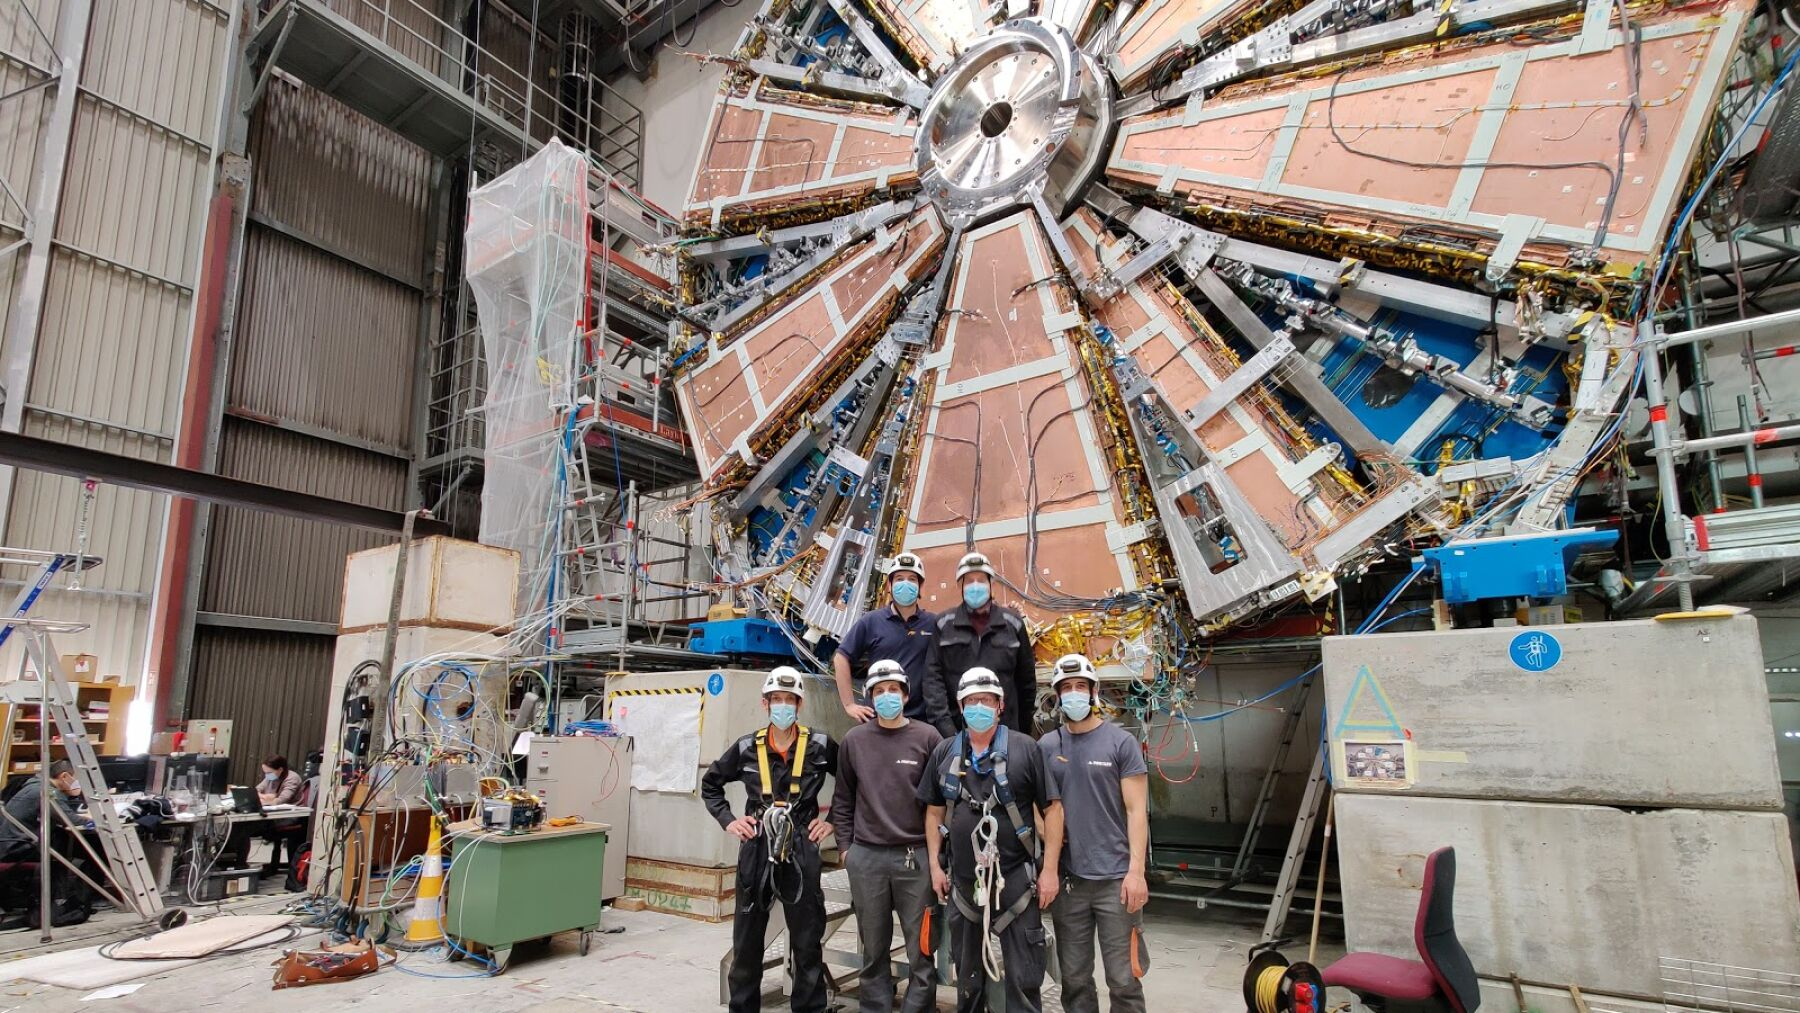 Jamie and his team in front of the New Small Wheel at CERN - it is 10m in diameter